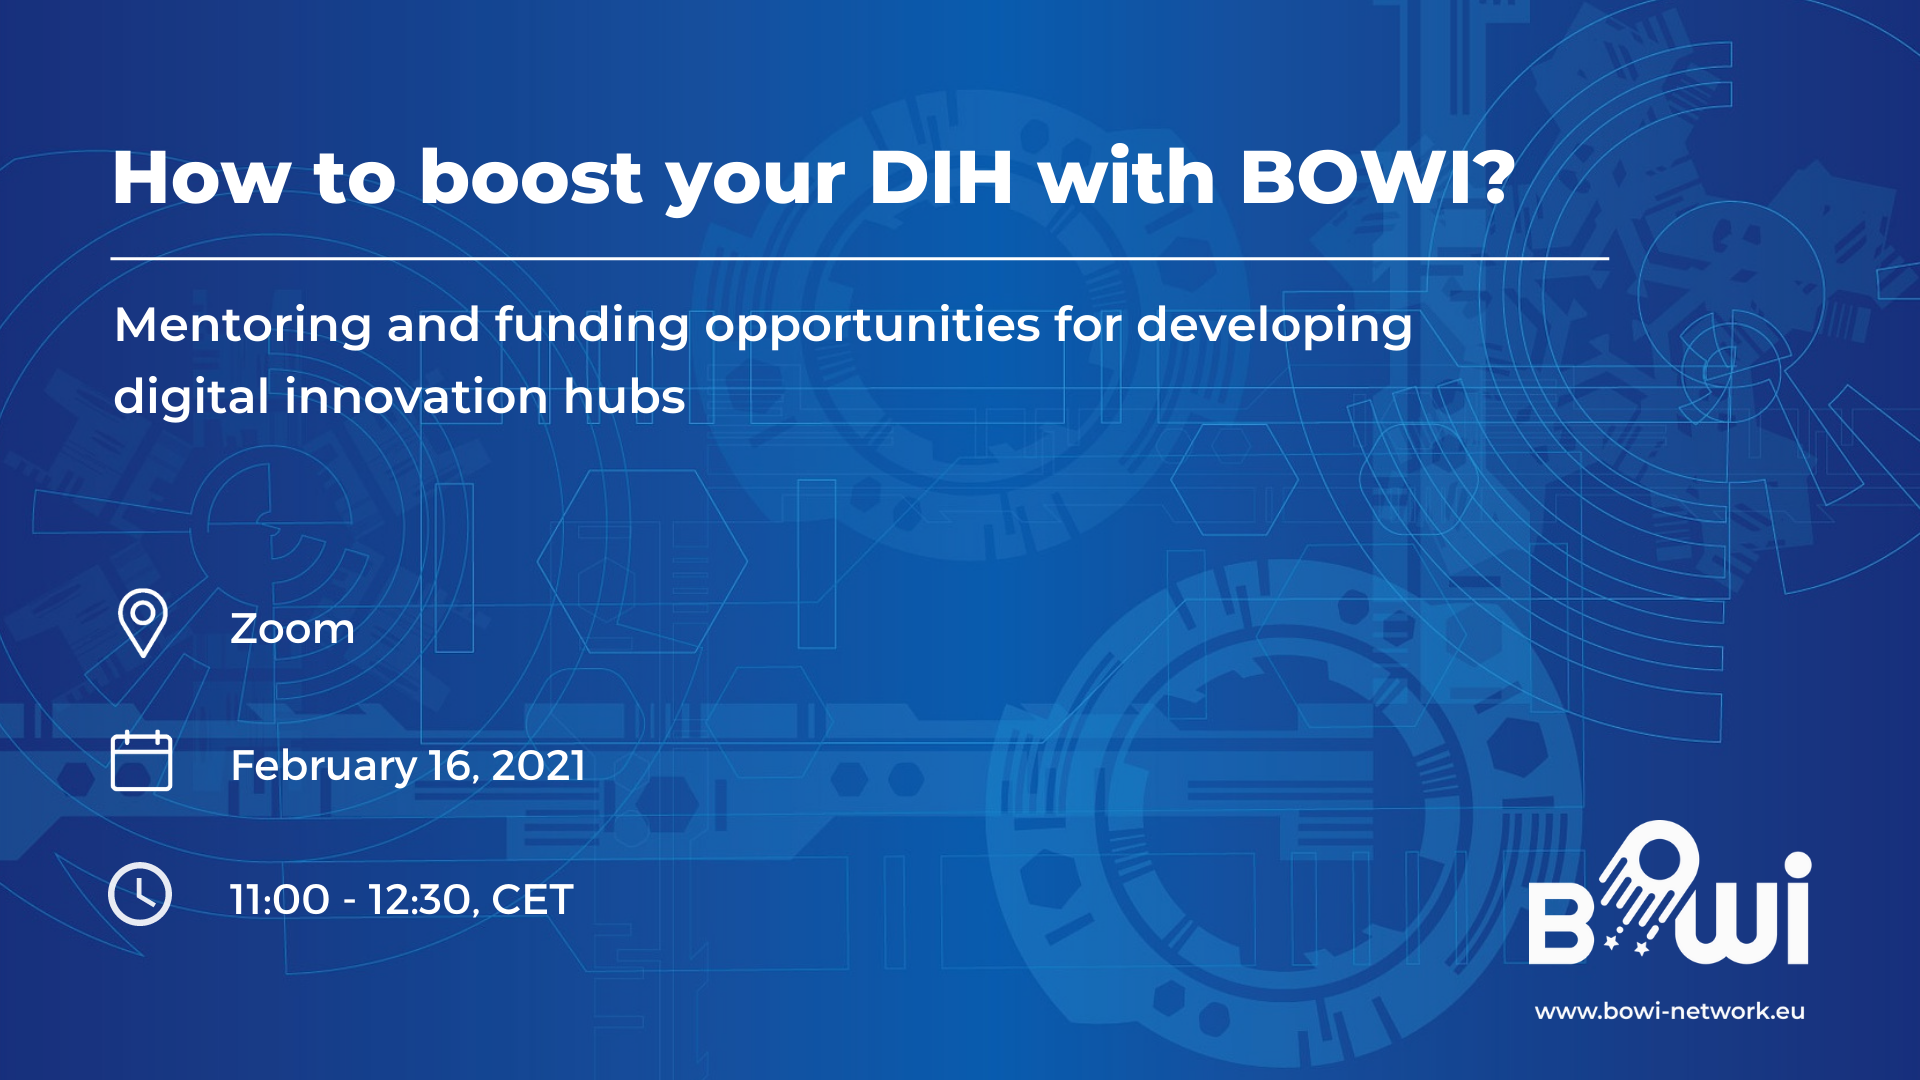 Bowi webinar date and time